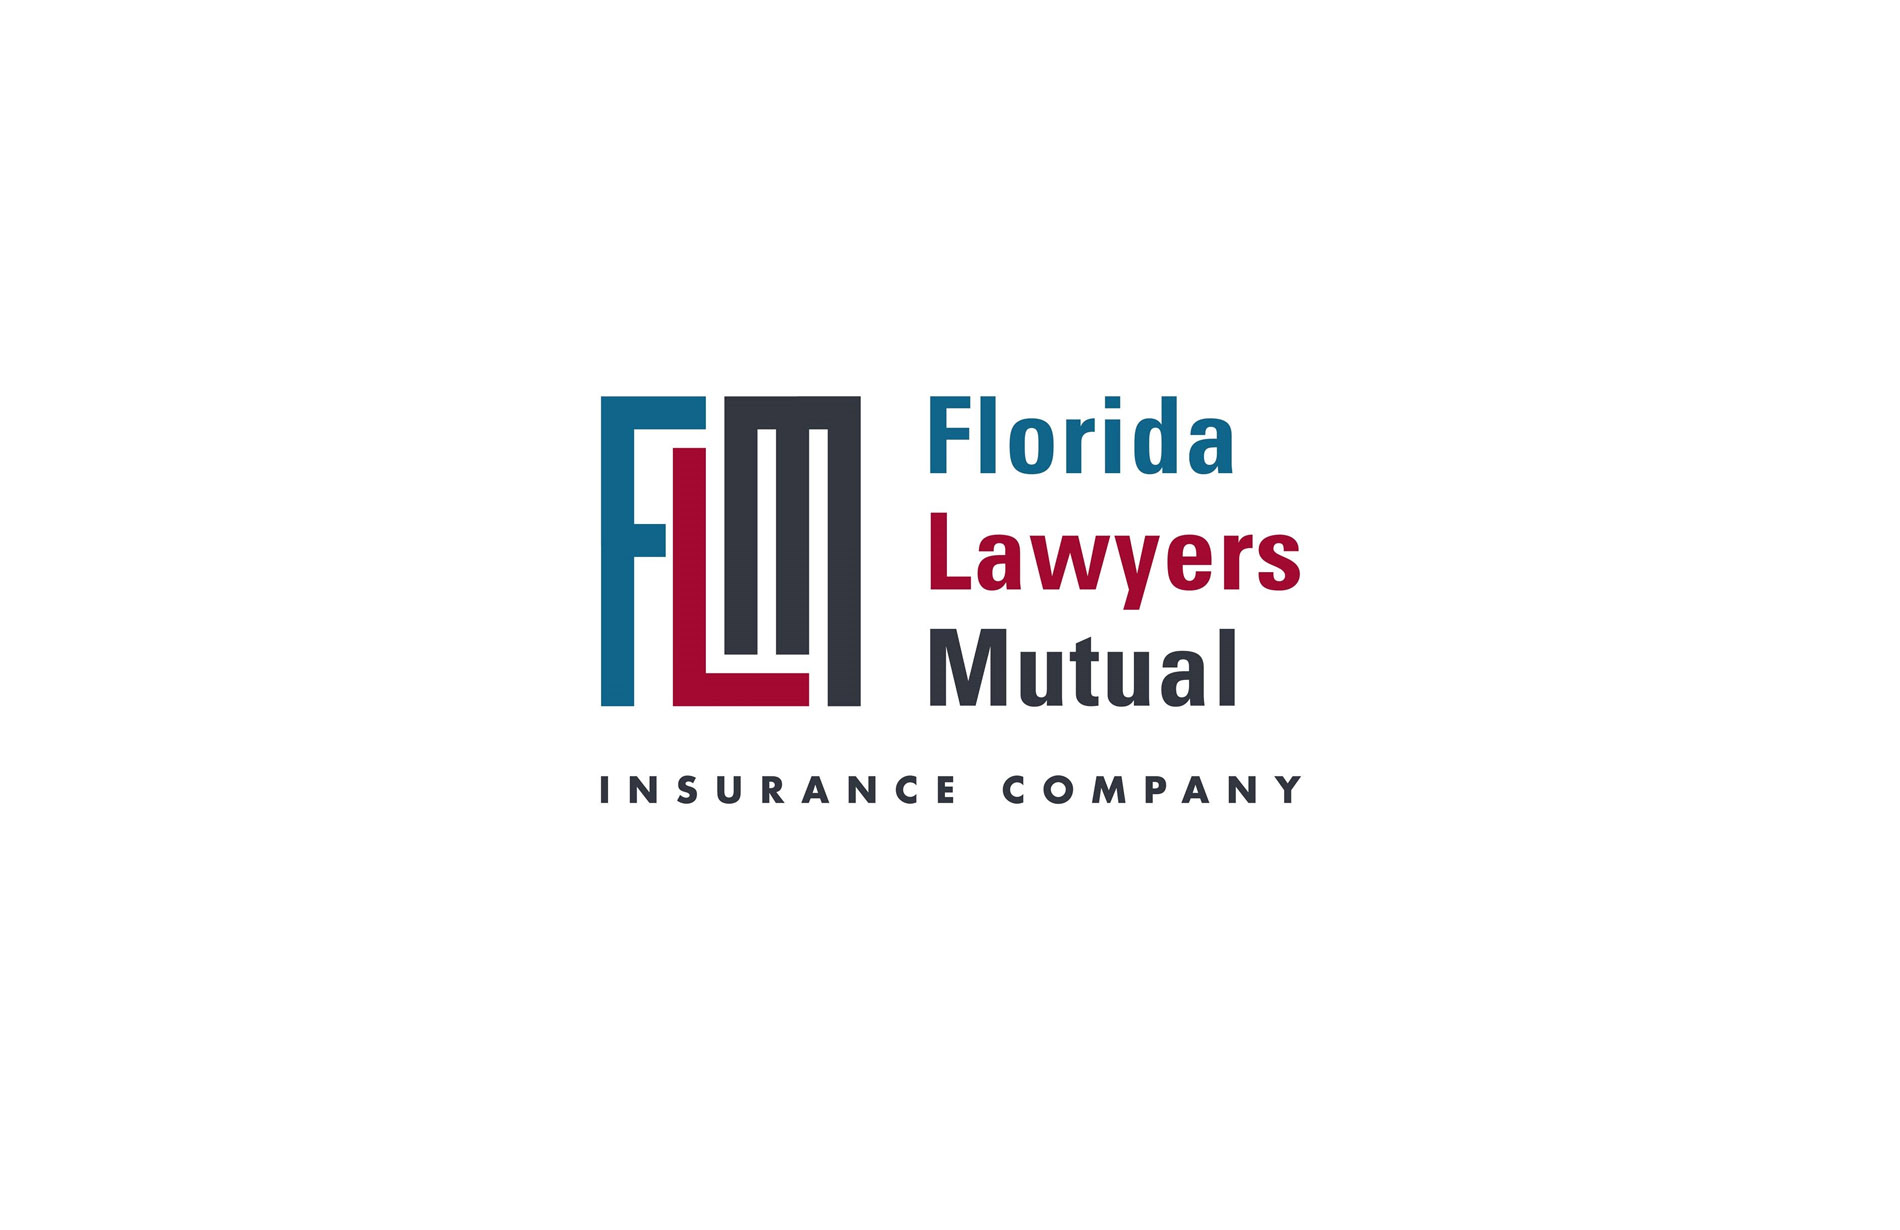 Florida Lawyers Mutual Insurance Co.